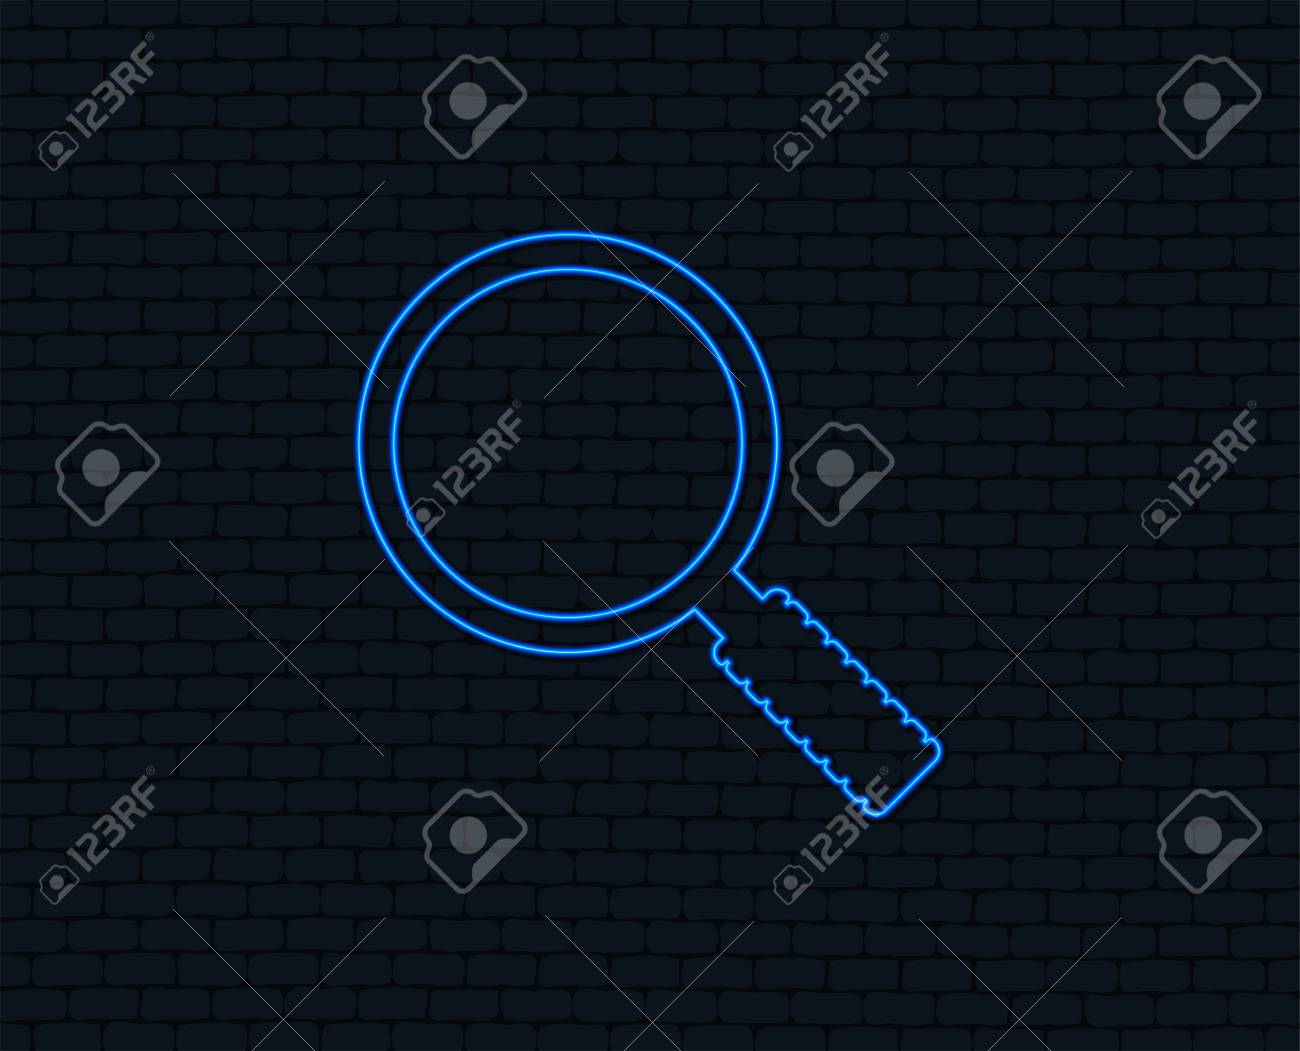 hight resolution of neon light magnifier glass sign icon zoom tool button navigation search symbol